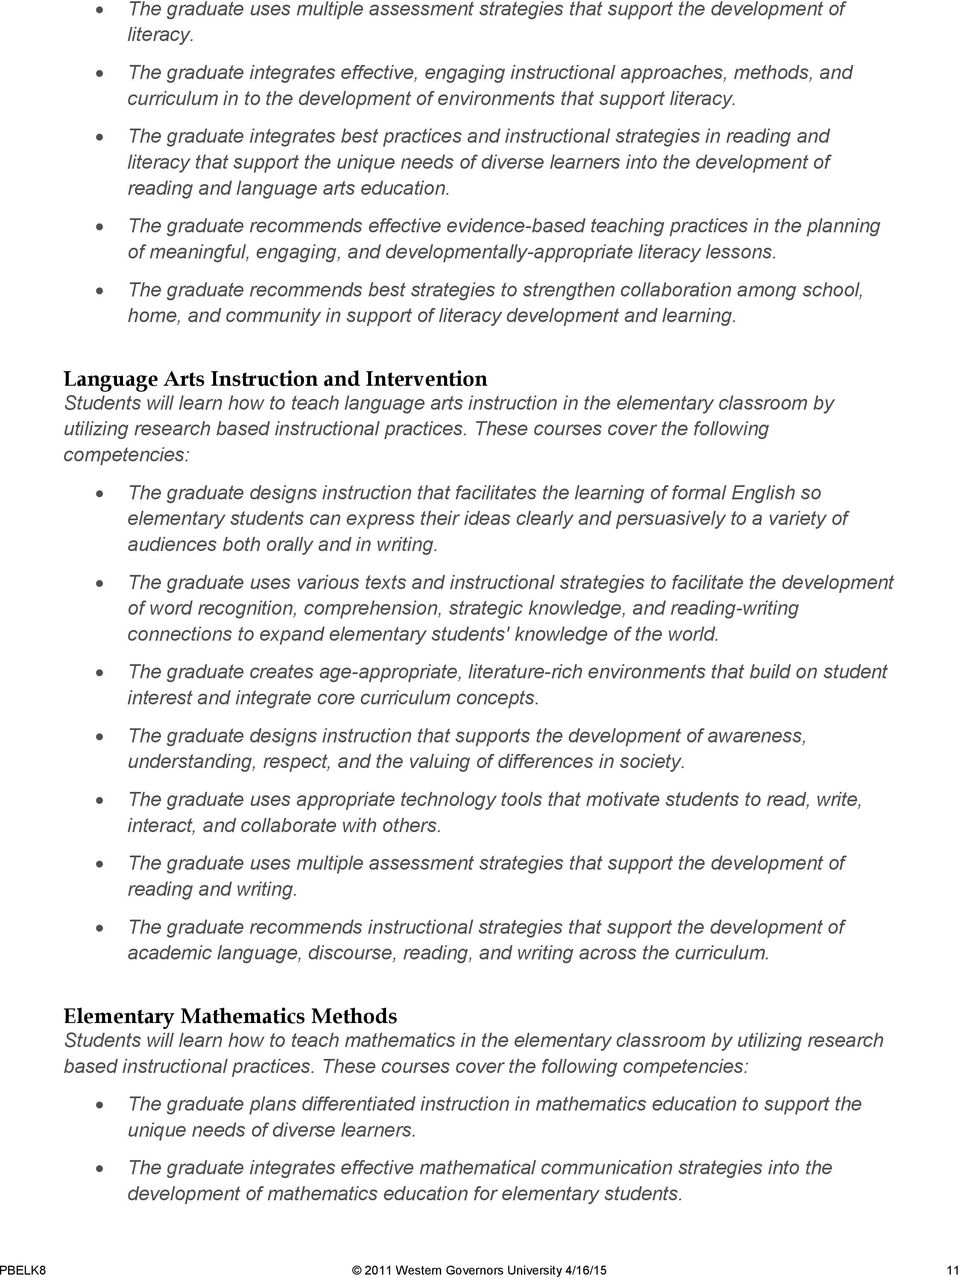 The graduate integrates best practices and instructional strategies in reading and literacy that support the unique needs of diverse learners into the development of reading and language arts